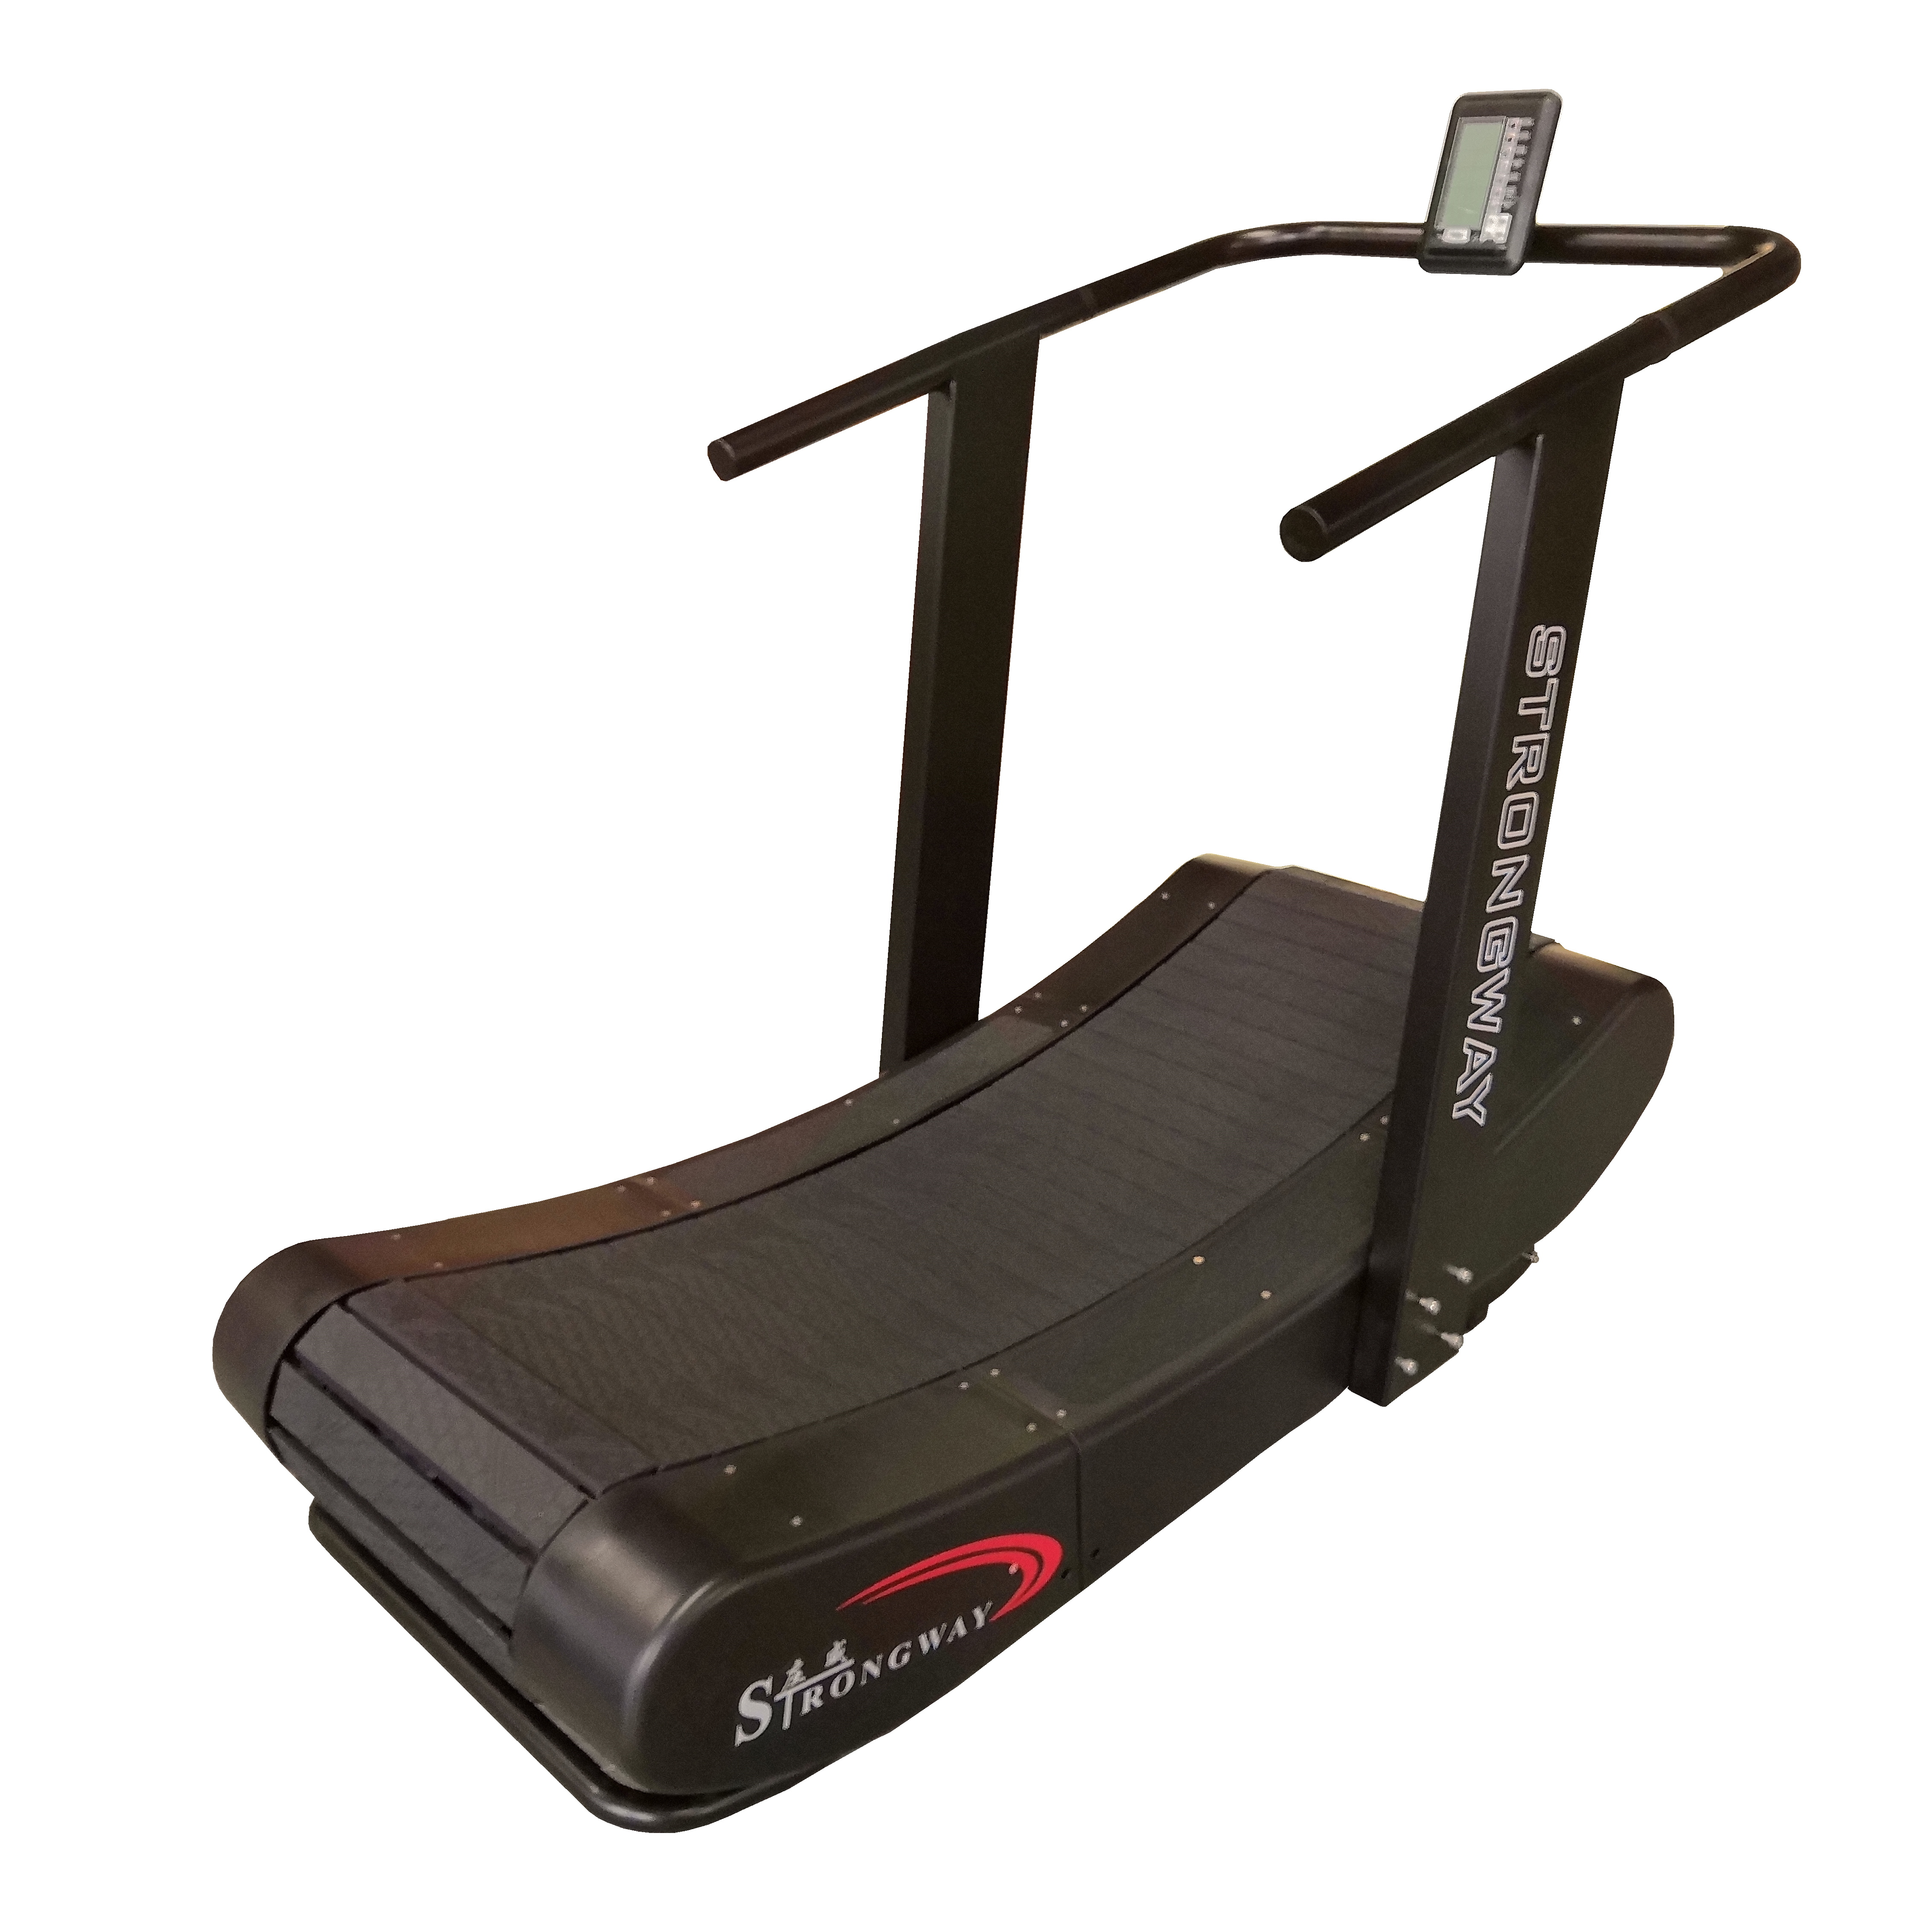 Fitness 220kg self-powered commercial gym equipment curved mechanical treadmill